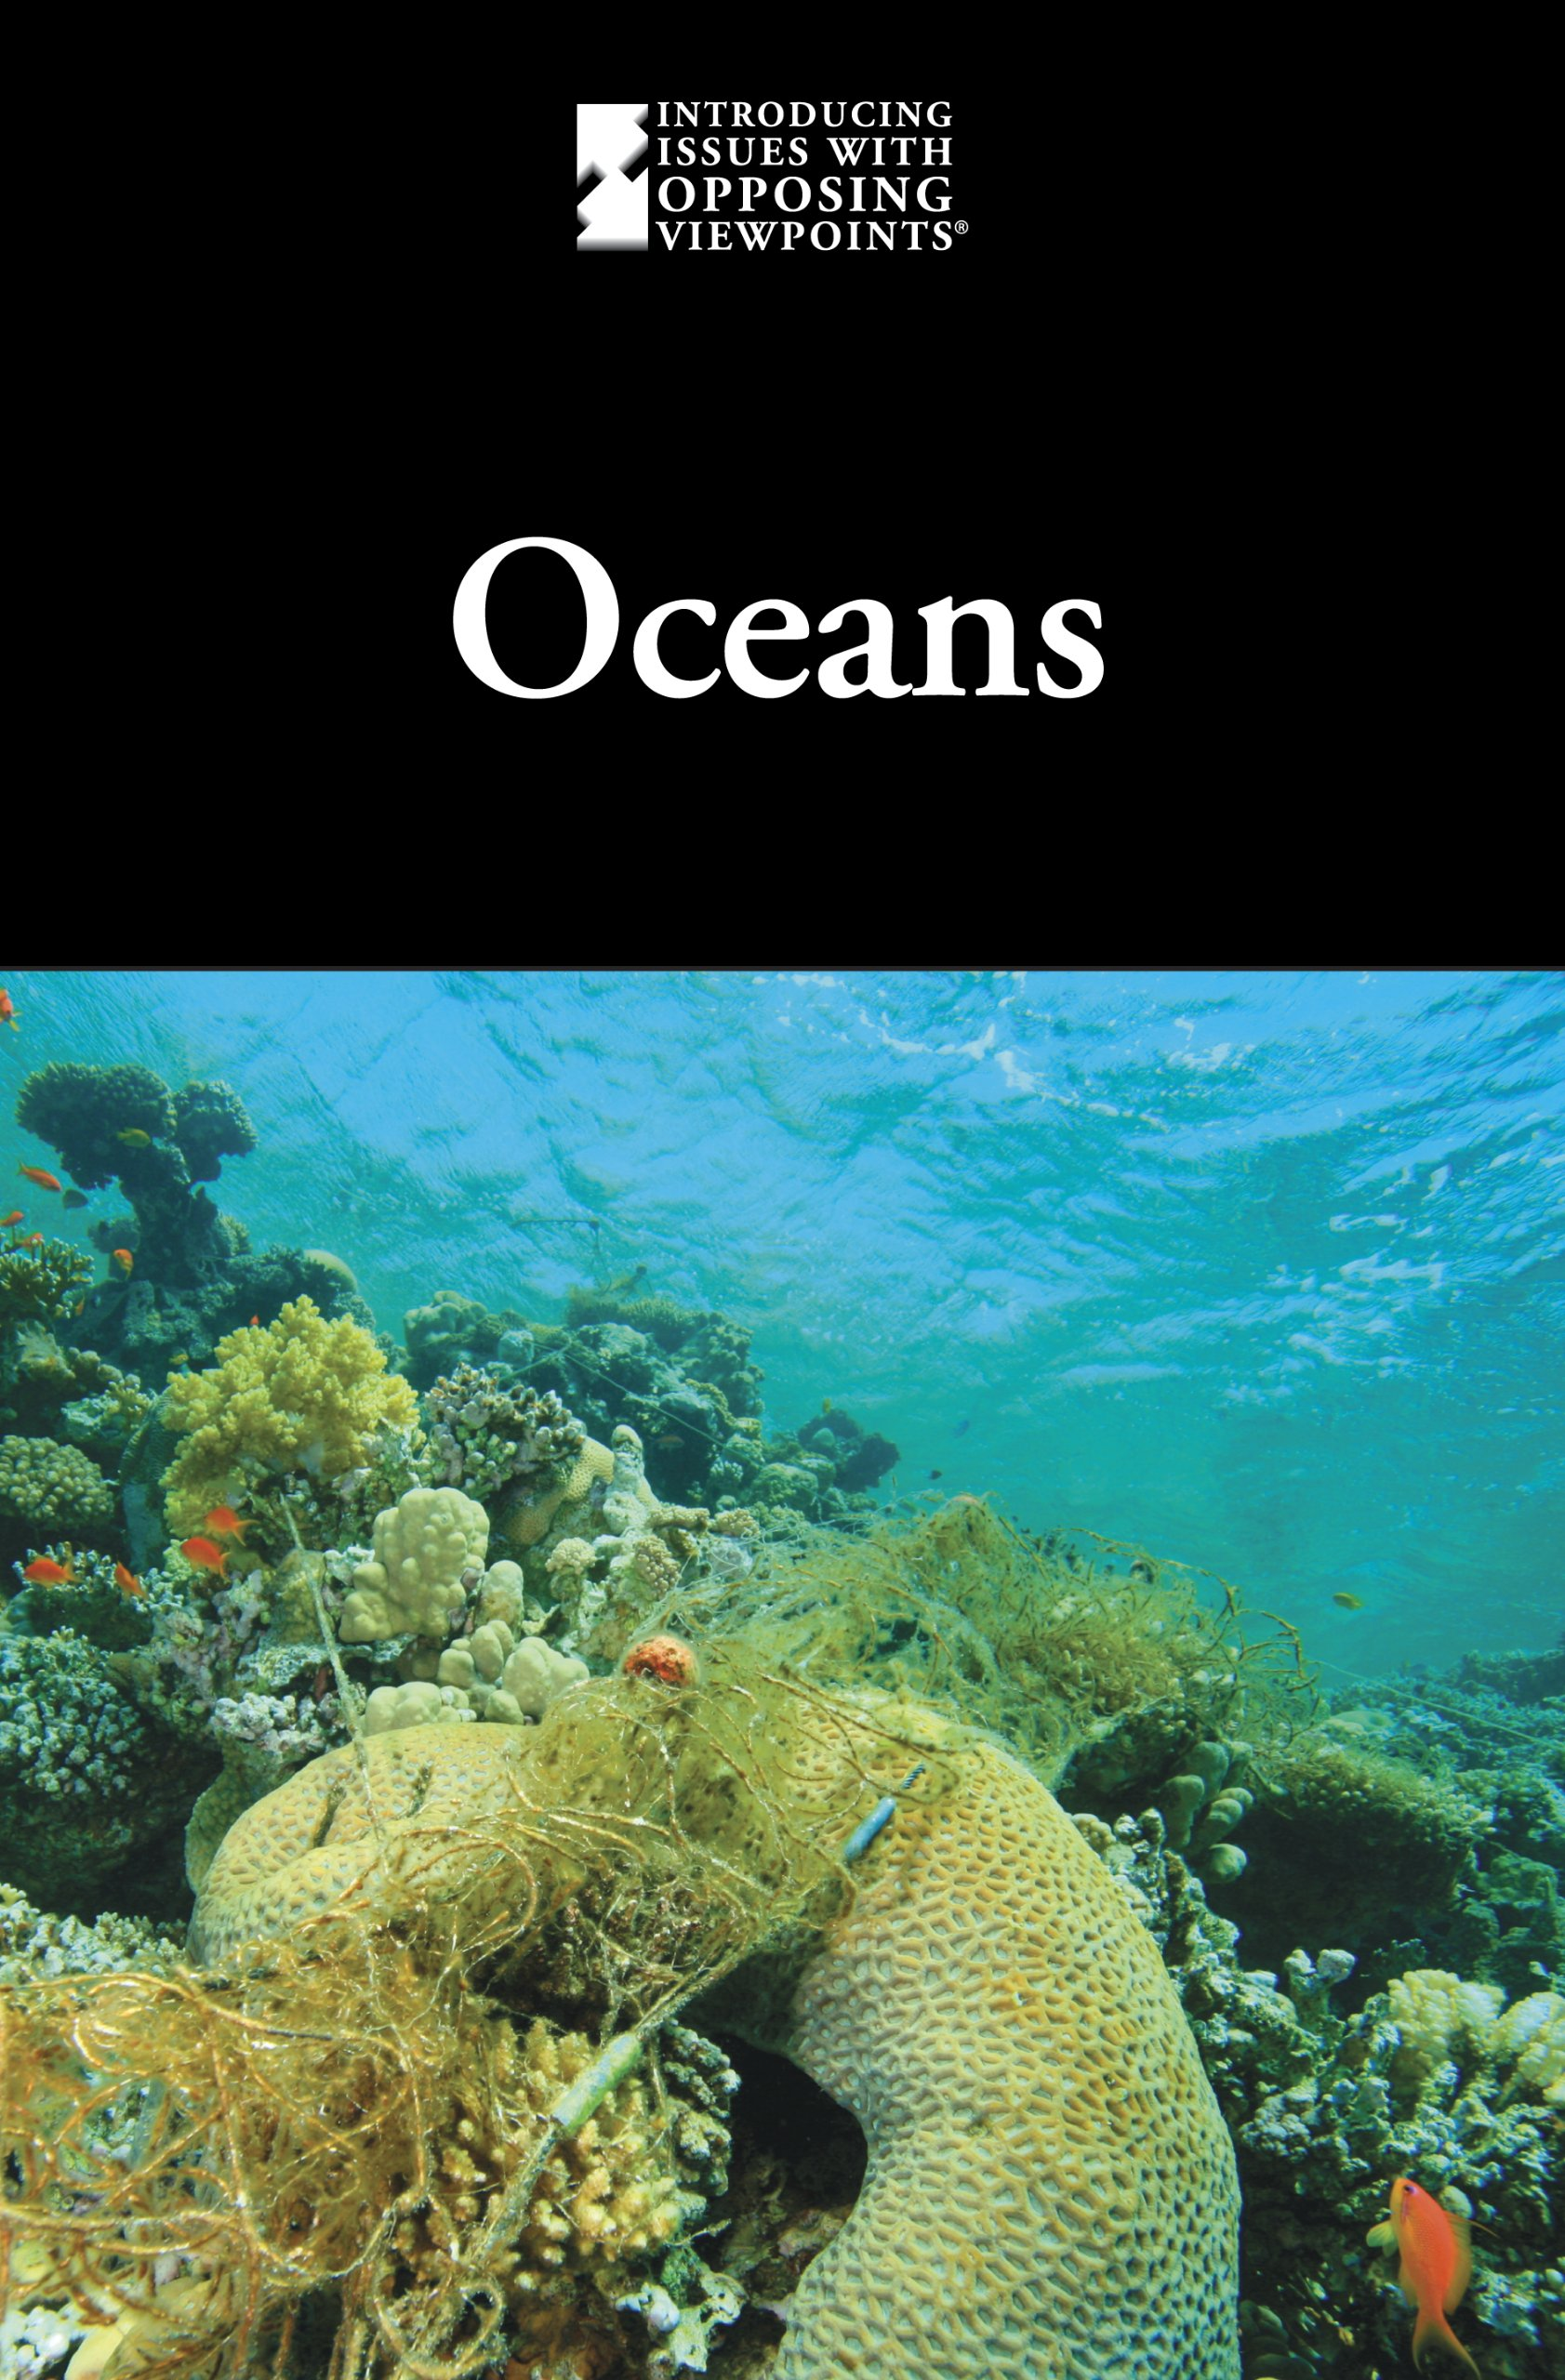 Oceans (Introducing Issues With Opposing Viewpoints) PDF